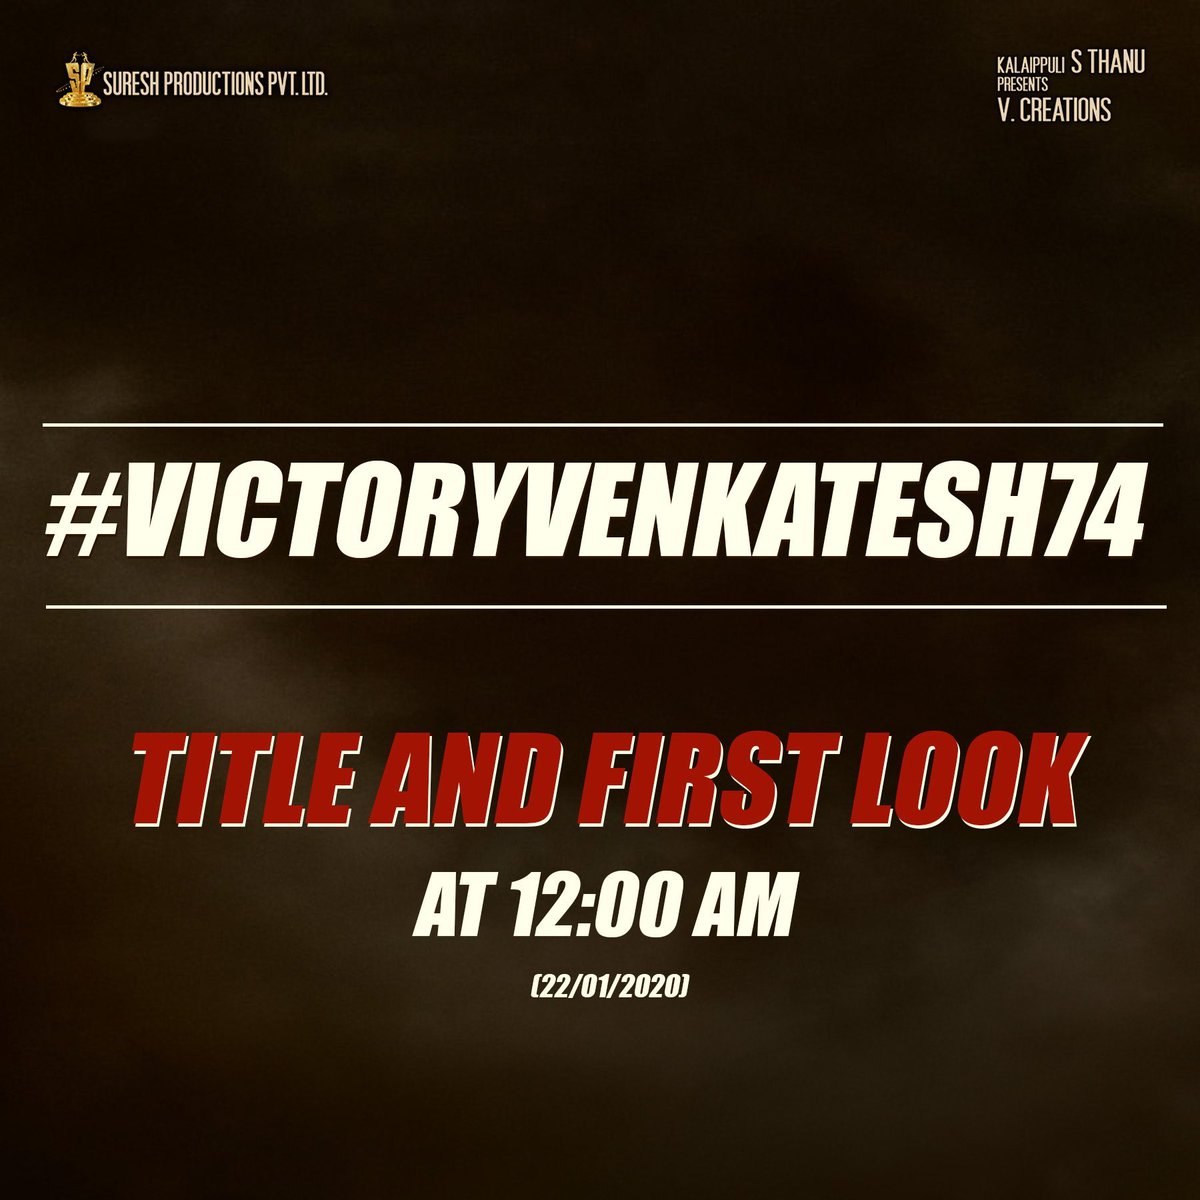 #VictoryVenkatesh74 First Look and Title releasing tonight at 12 AM. #Narappa is the title? Few more hours for official update..<br>http://pic.twitter.com/XHGOjHIy8z